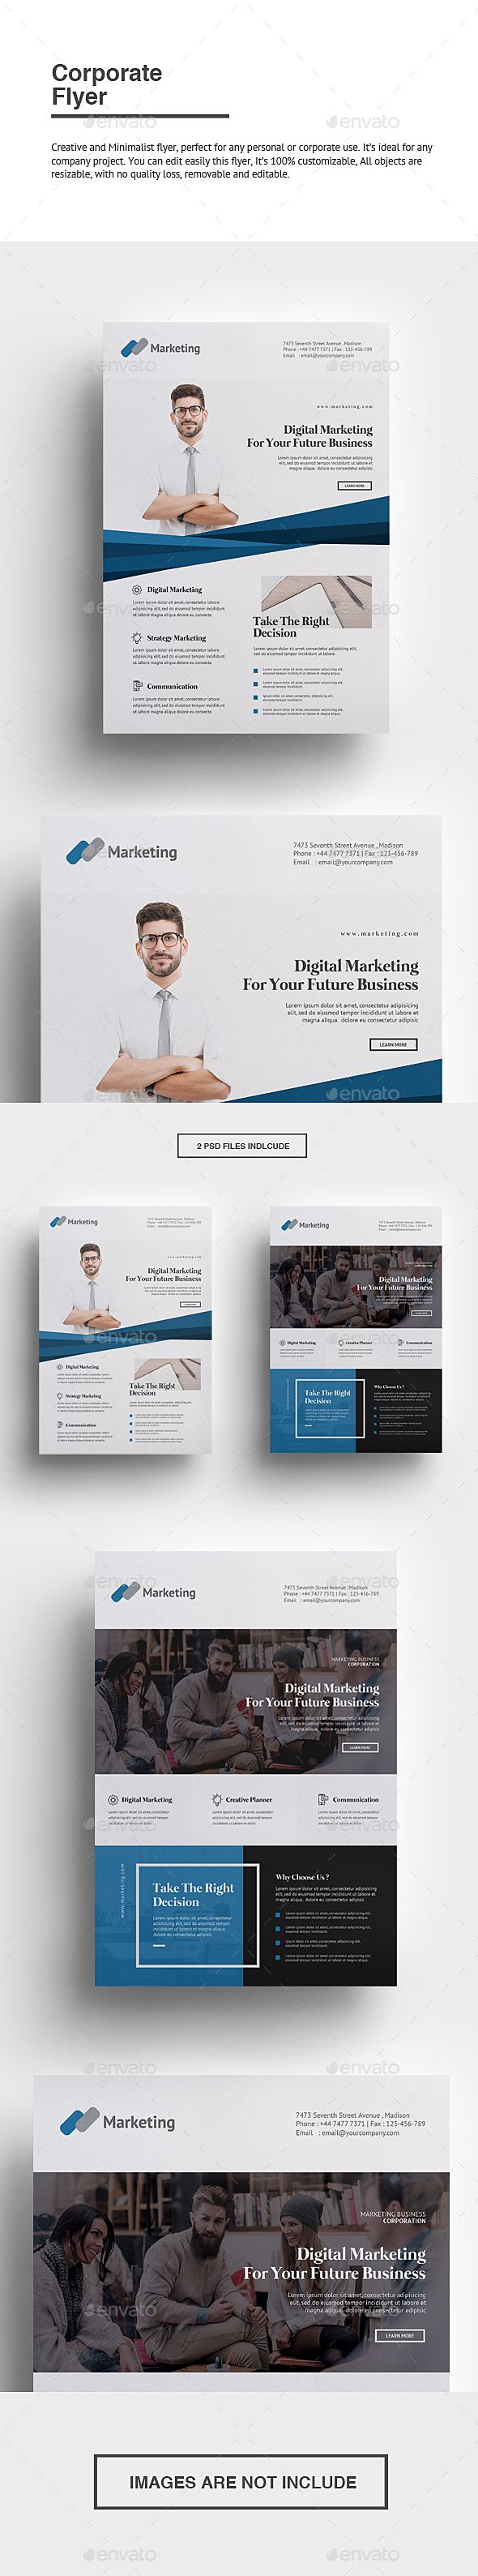 94 best Corporate Flyer images on Pinterest | Corporate flyer, Flyer ...